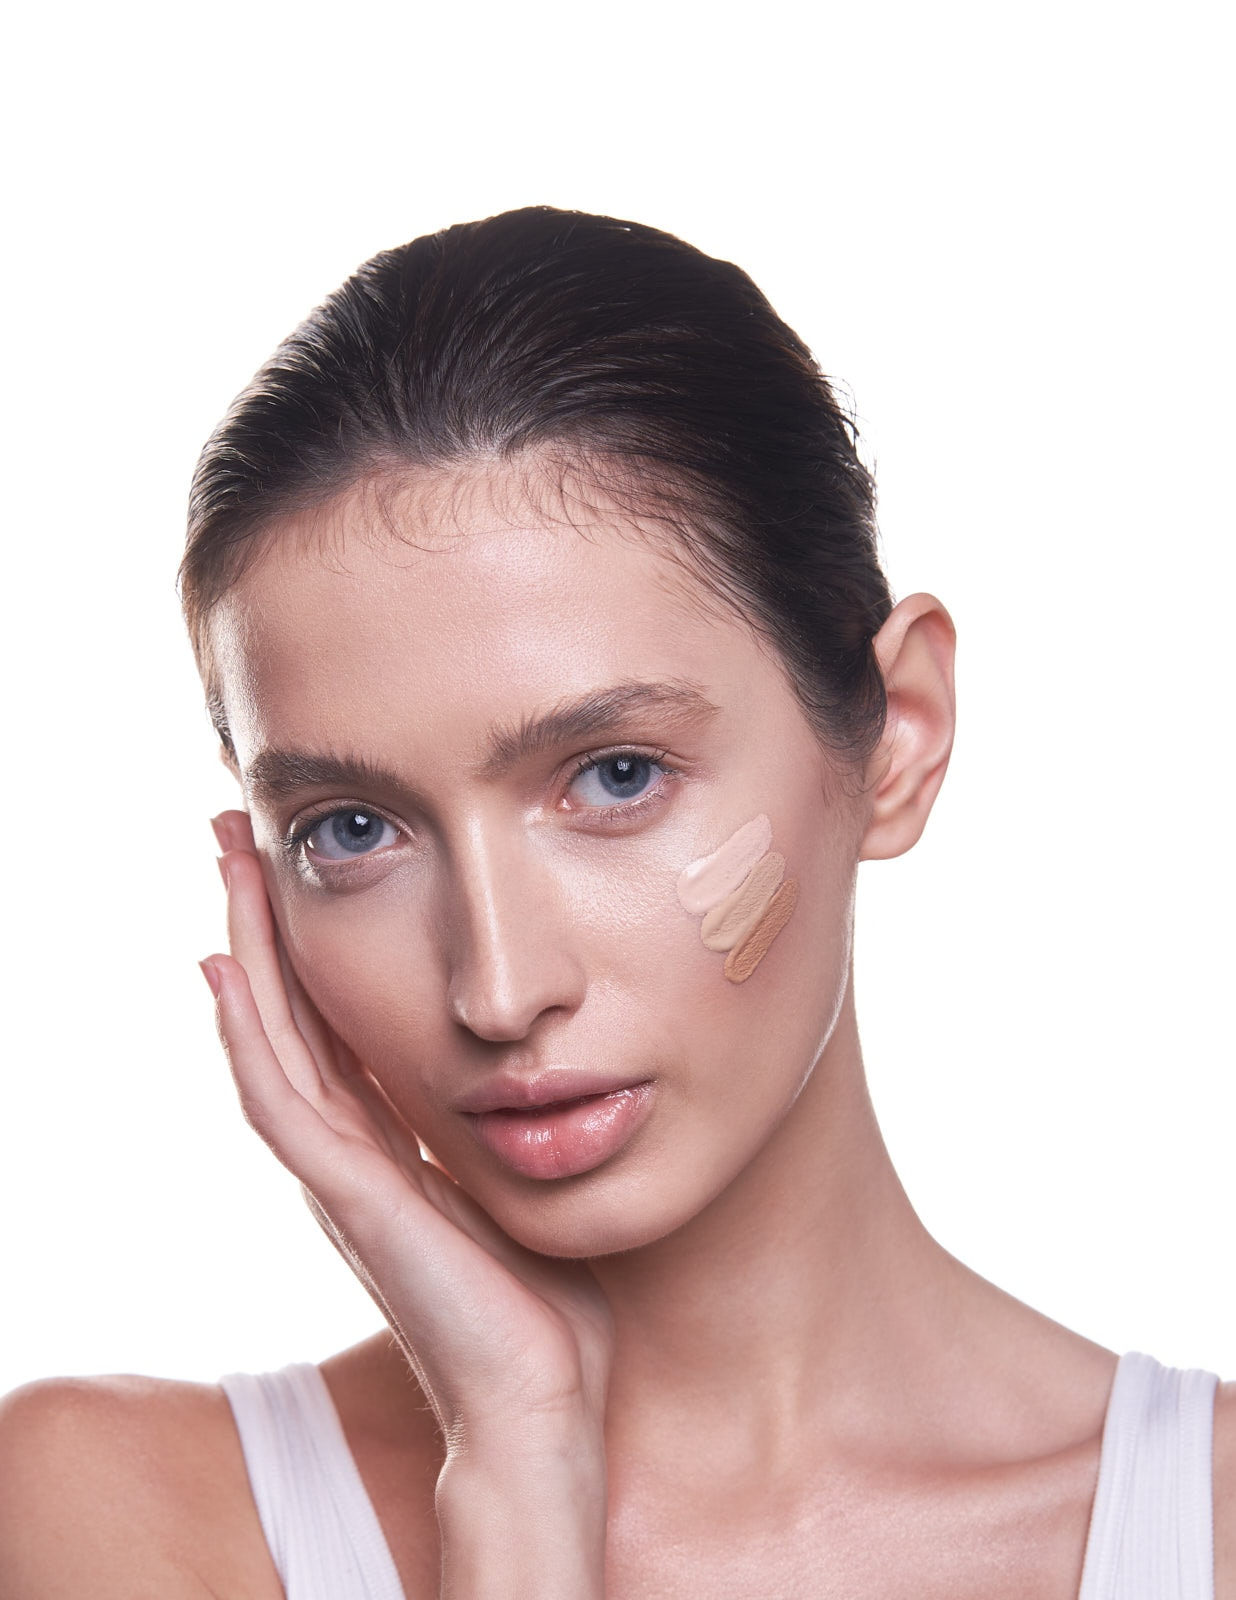 Profile Beauty Portrait with Glossier Skin Tint